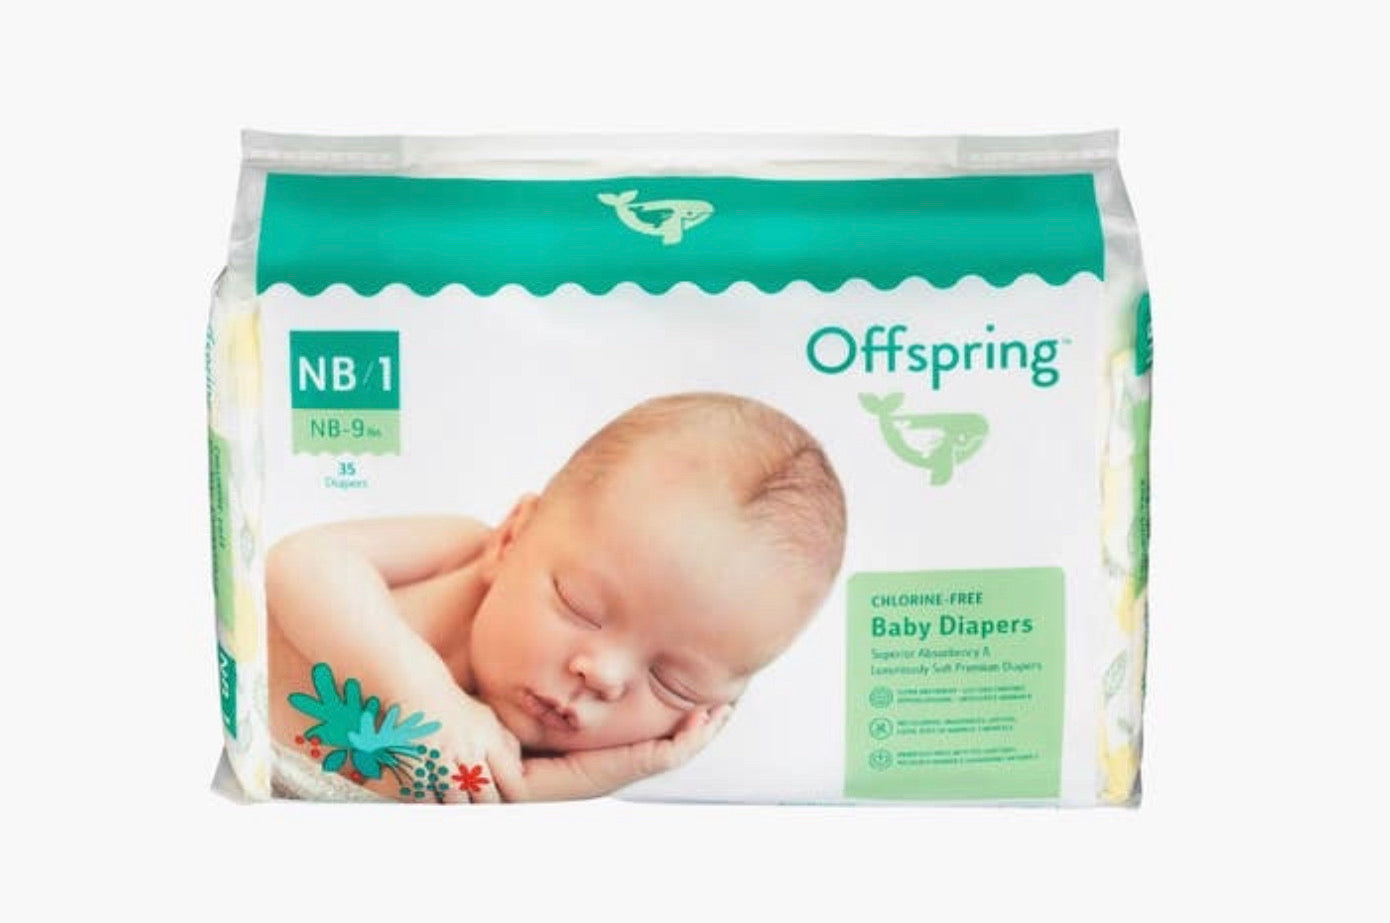 Offspring Chlorine Free Baby Diapers